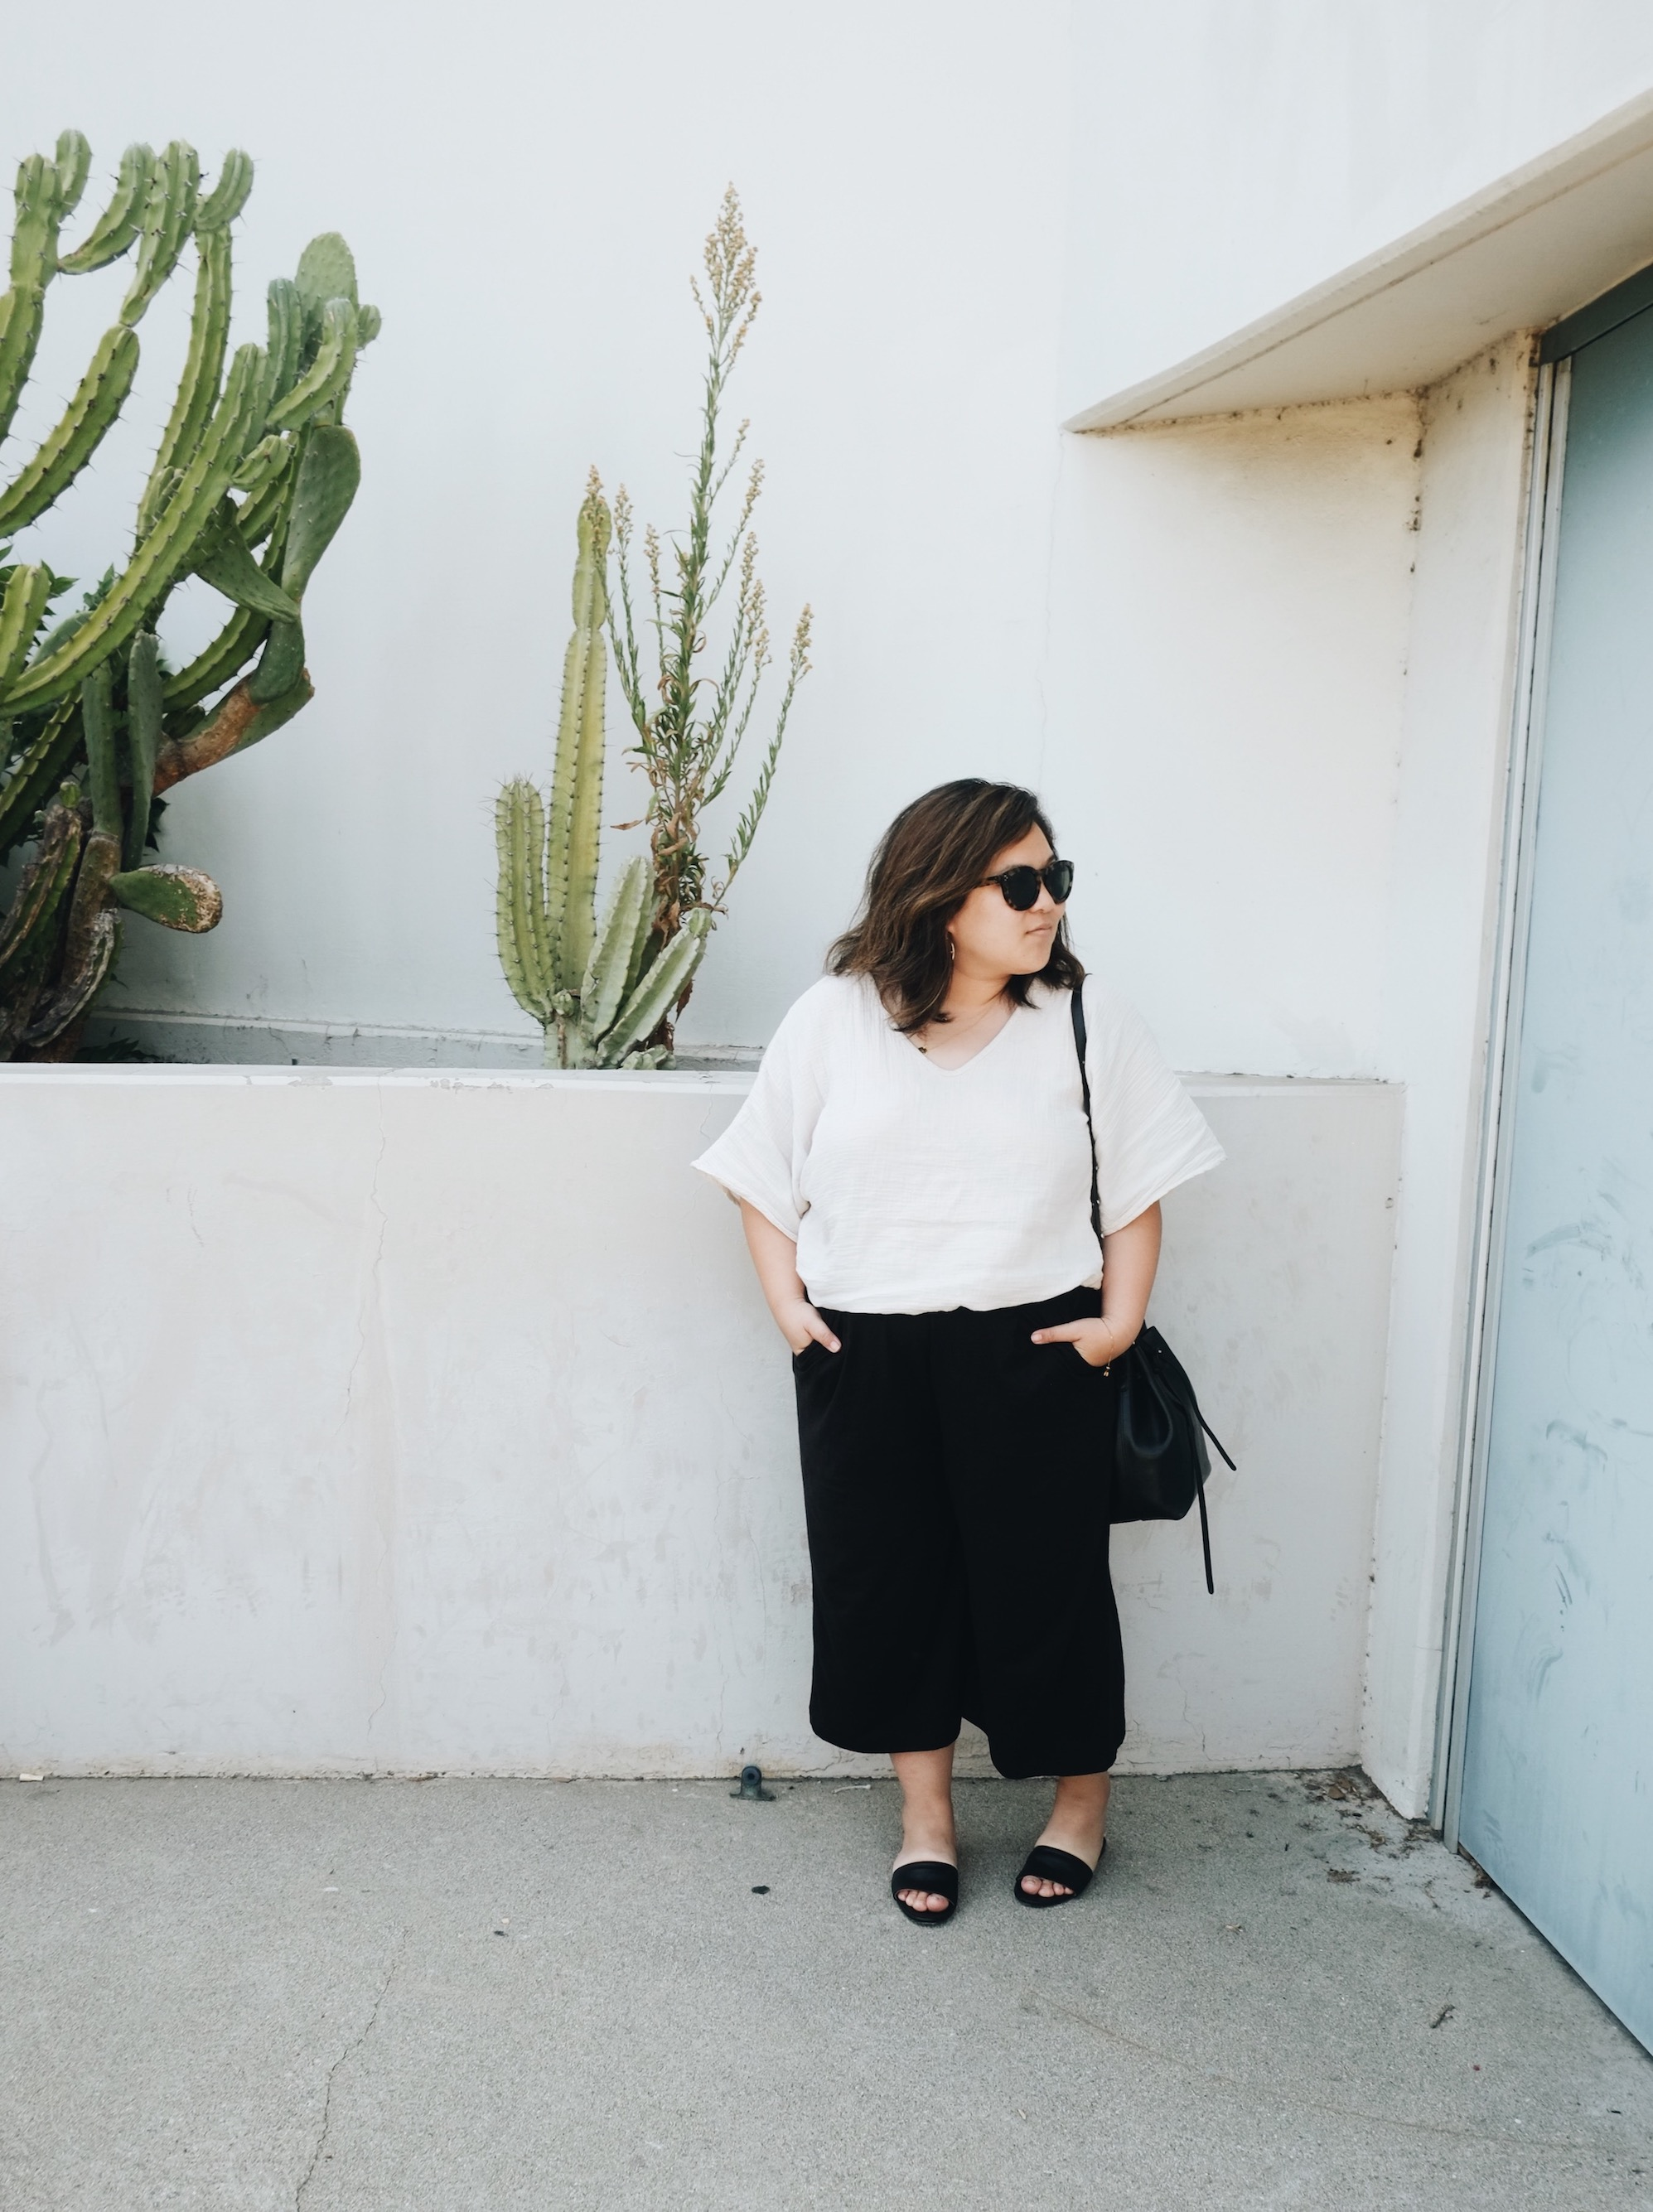 Minimalist black and white Monday outfit // A Week Of Minimalist Uniform Outfits With Jasmine Hwang From The Pleb Life on The Good Trade